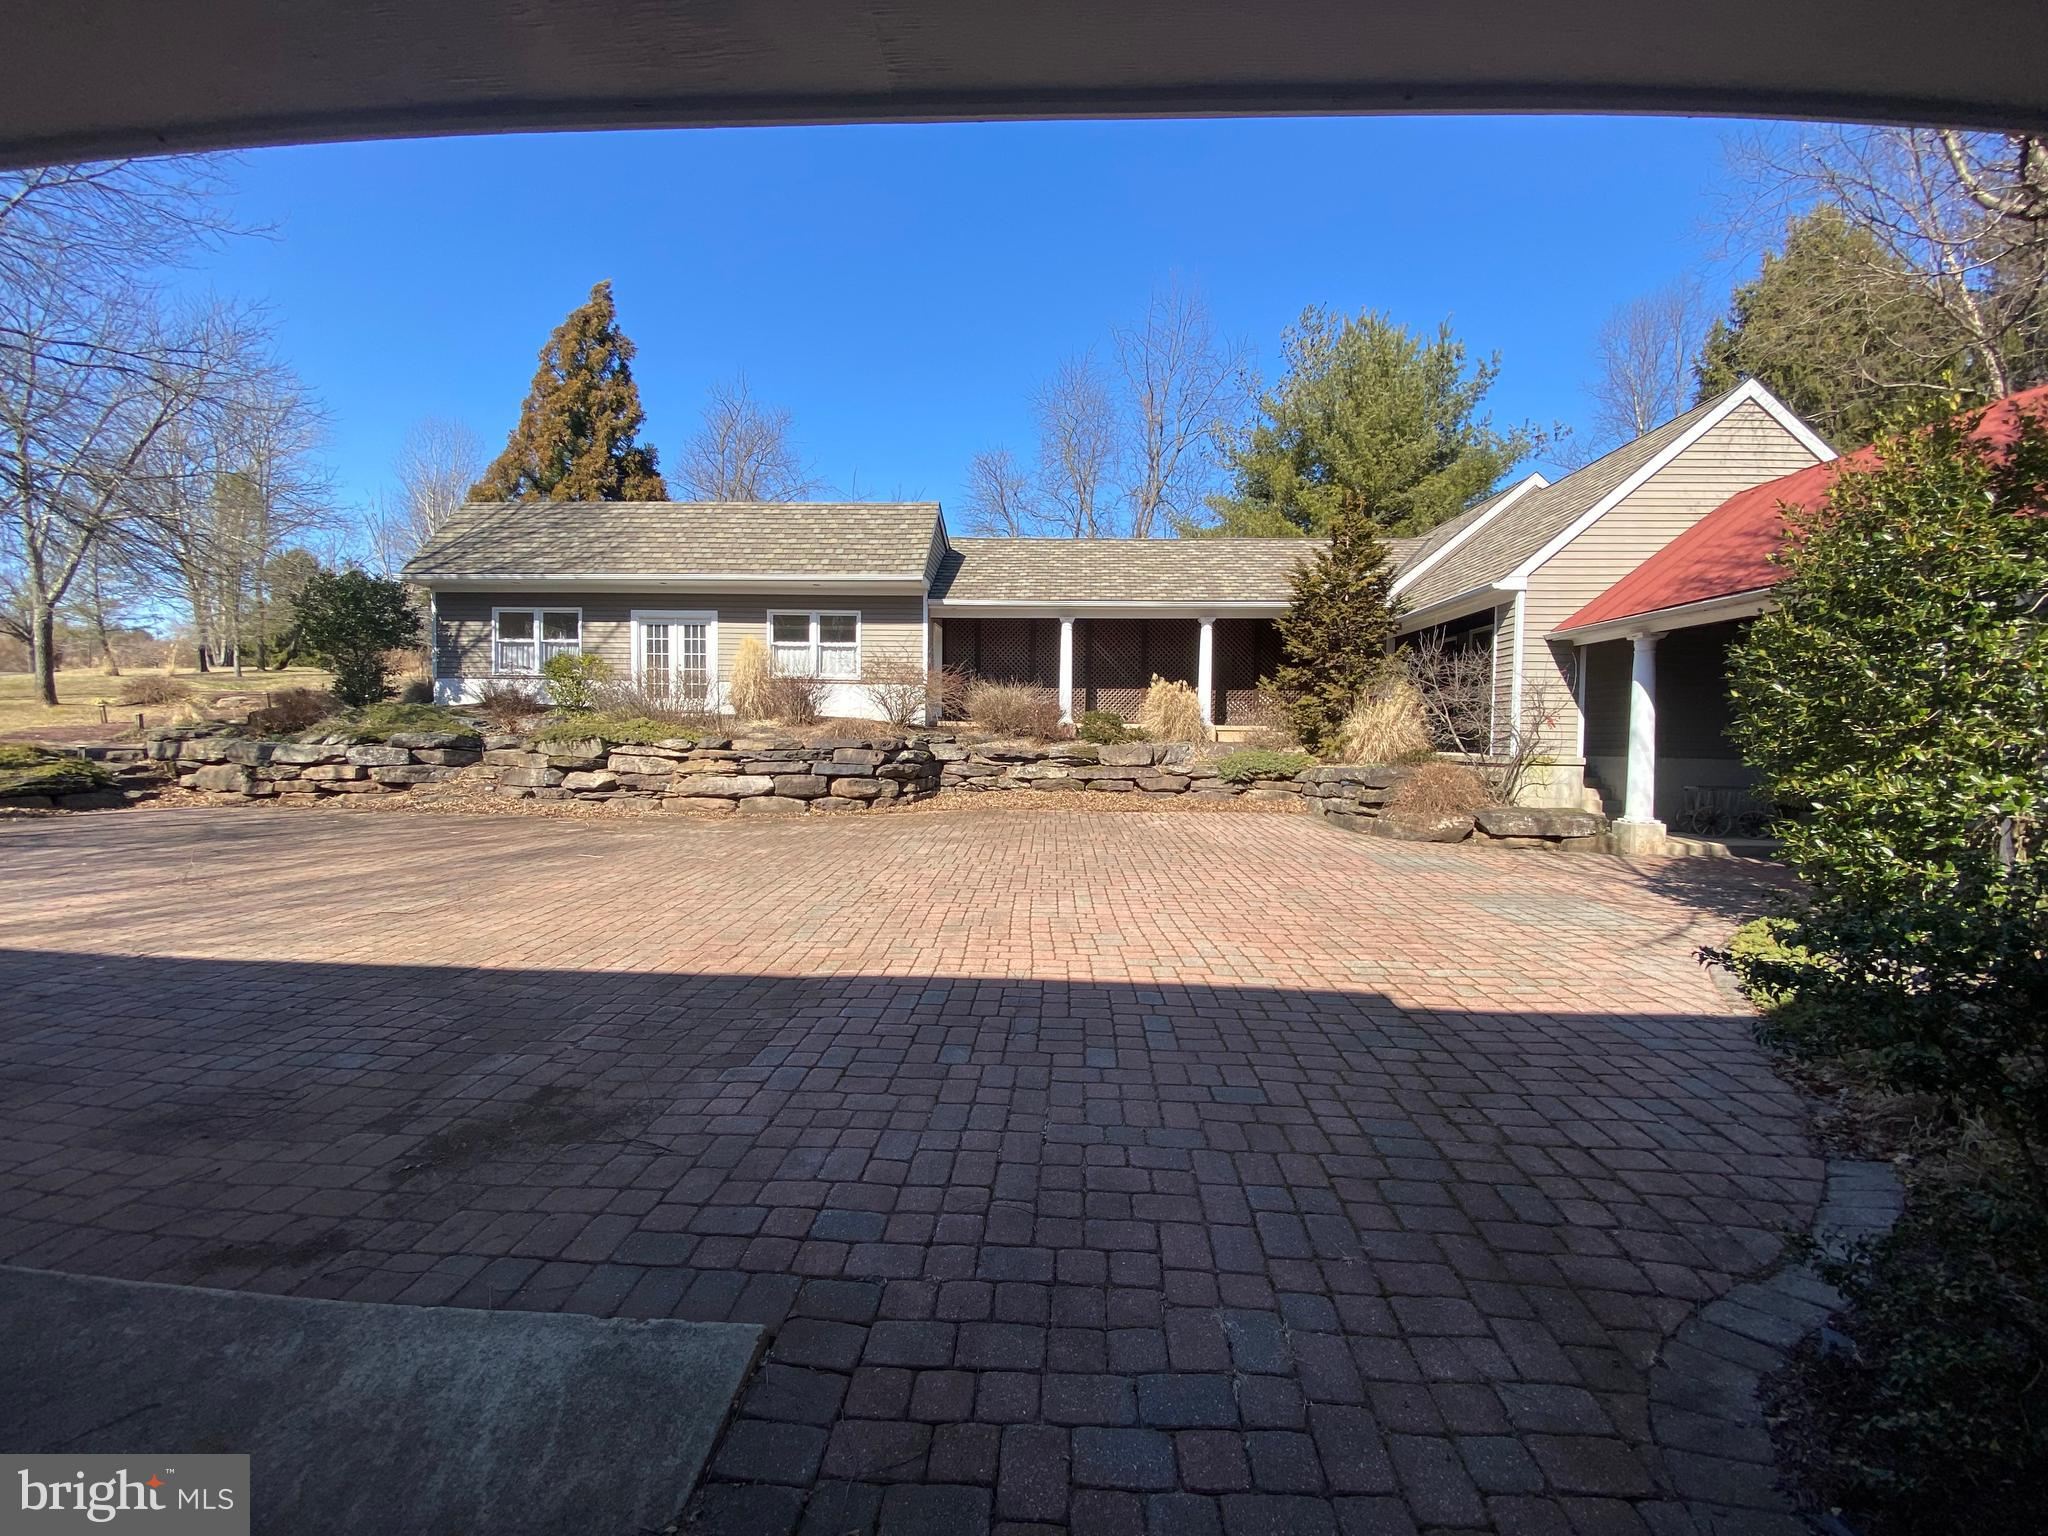 1636 Wrightstown Road, Newtown, PA 18940